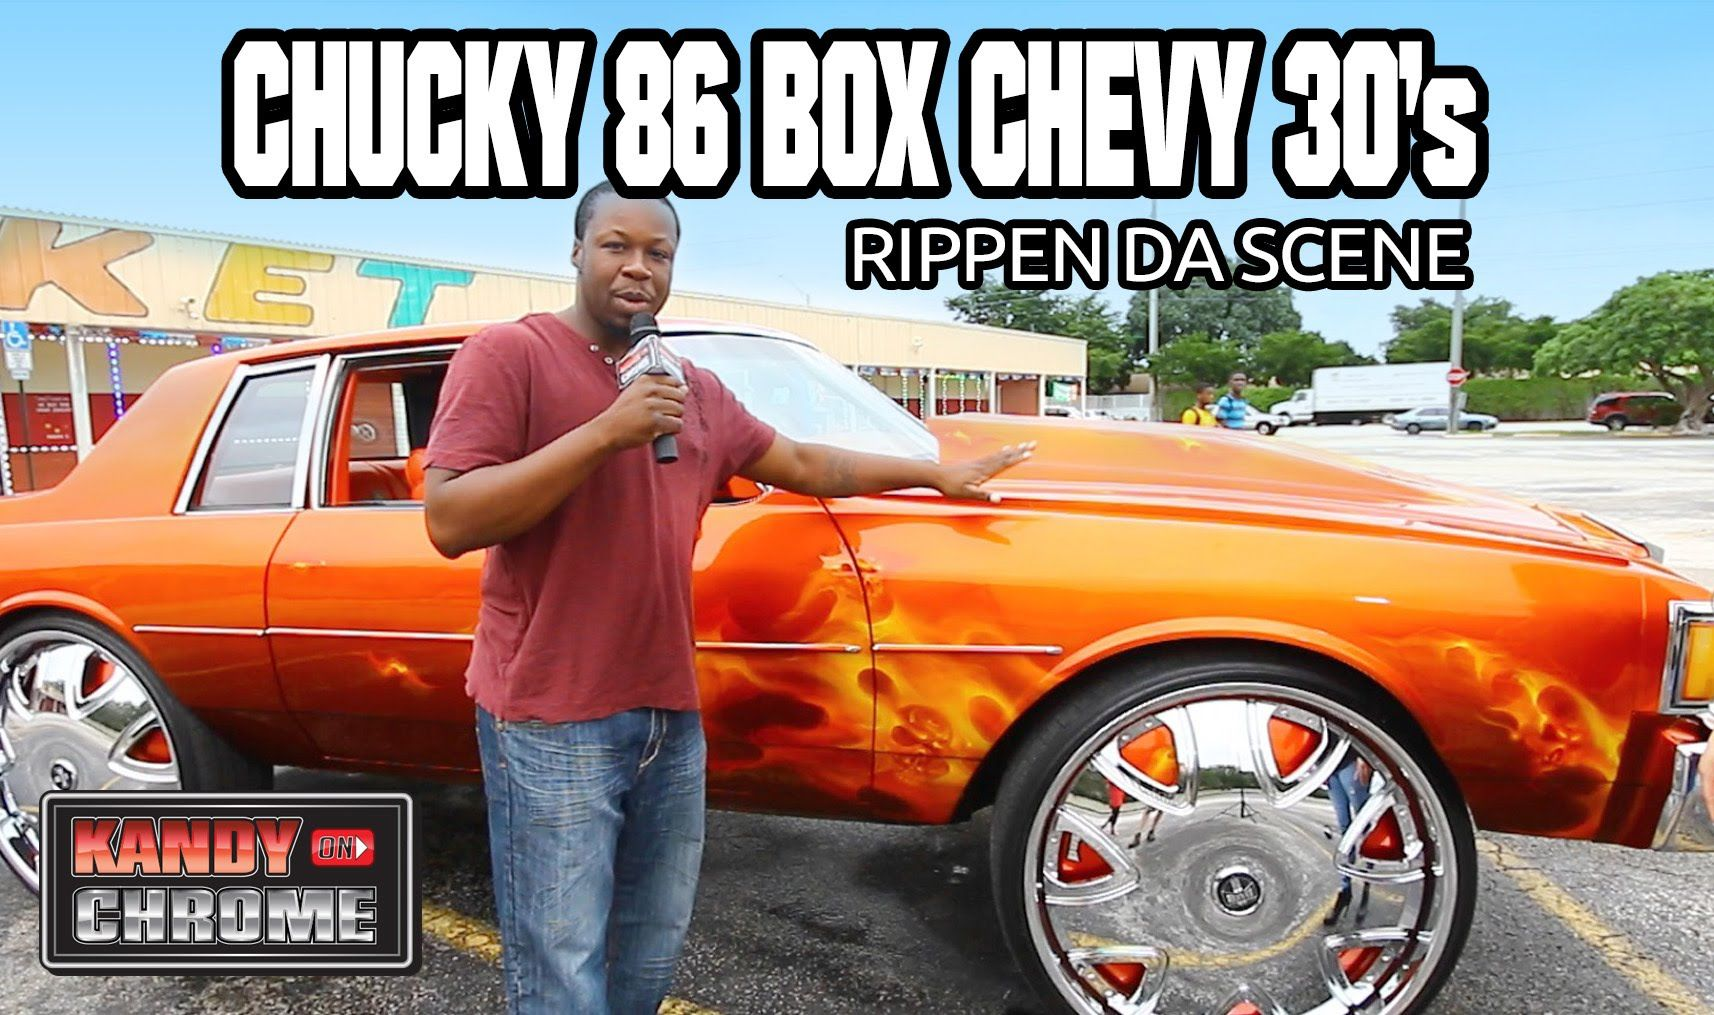 small resolution of 1986 box chevy on 30 s chucky